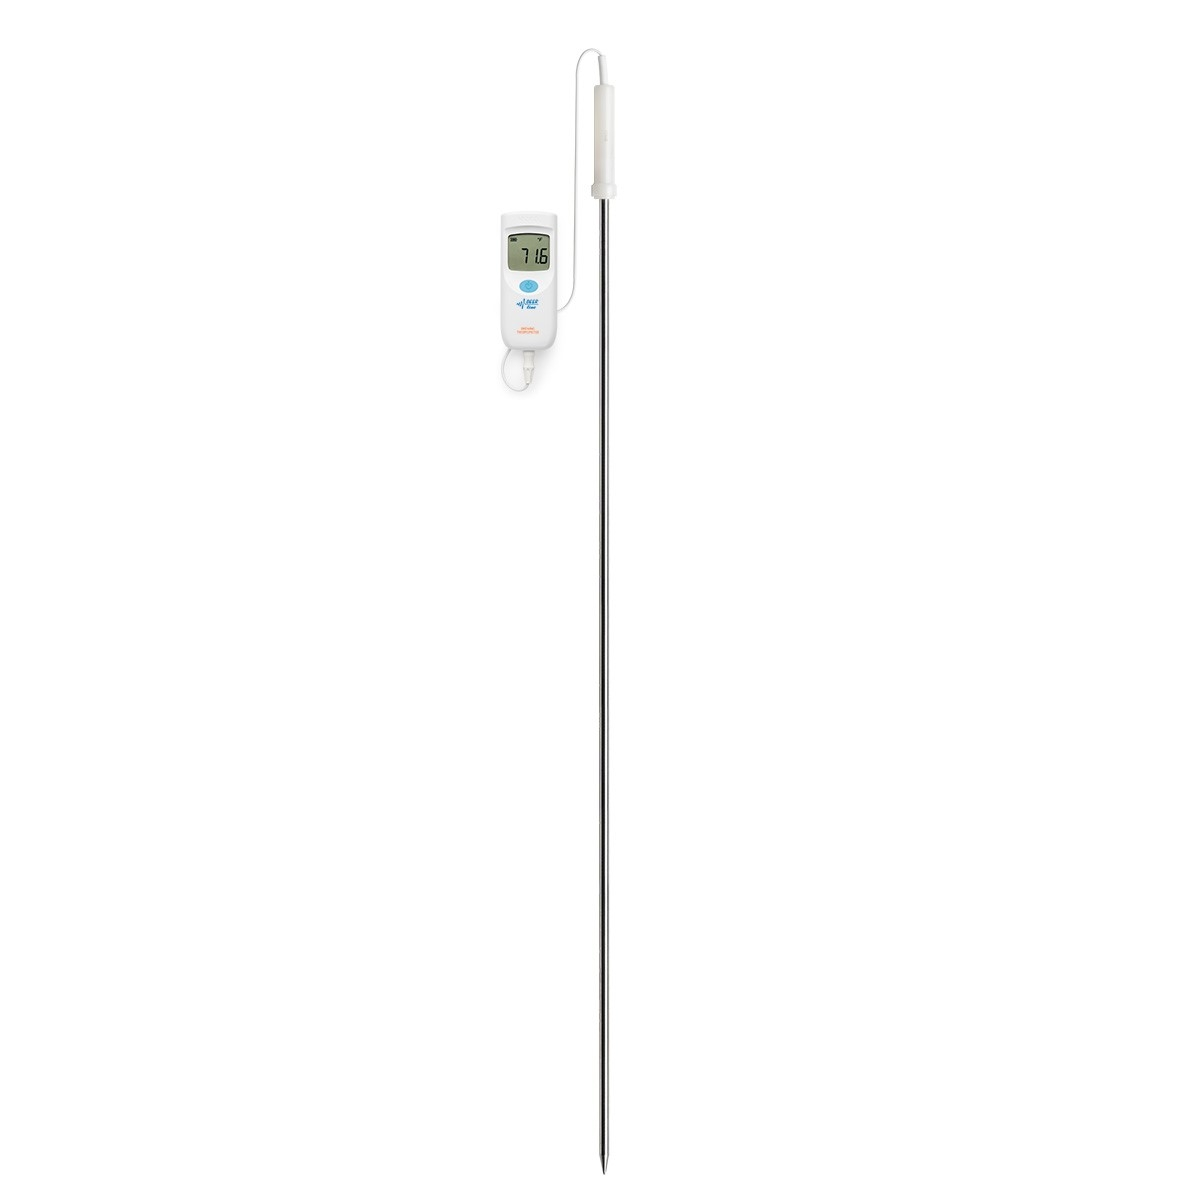 brewing-thermometer-full-view-hi935012